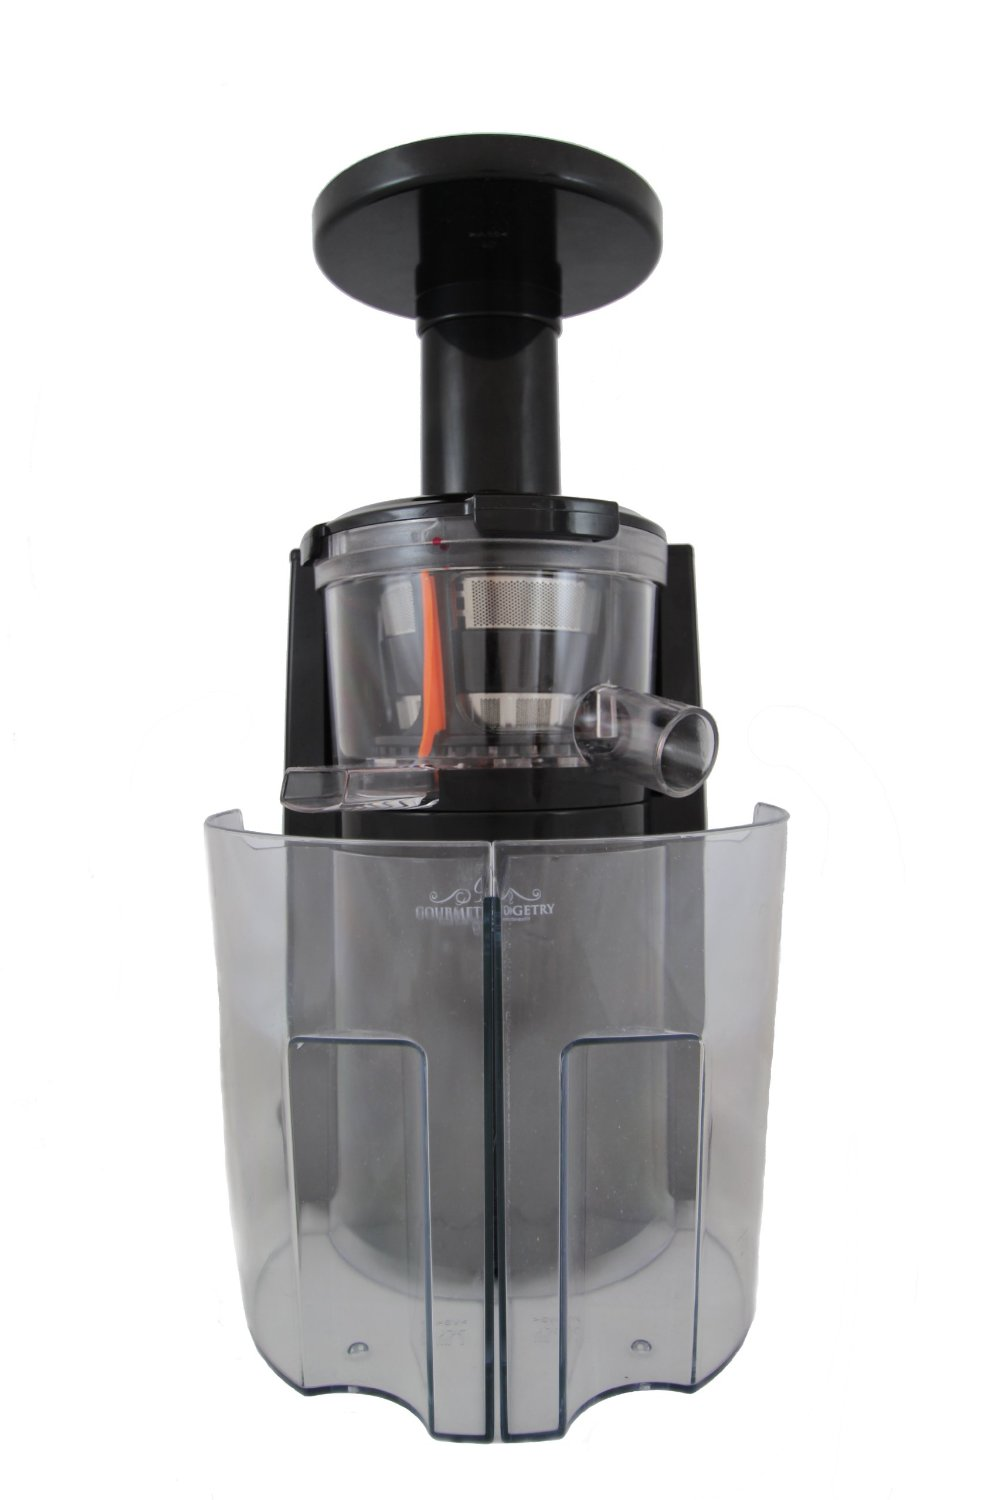 Slow Juicer For Leafy Greens : Gourmet Gadgetry Professional Slow Juicer Whole Fruit vegetables Leafy Greens